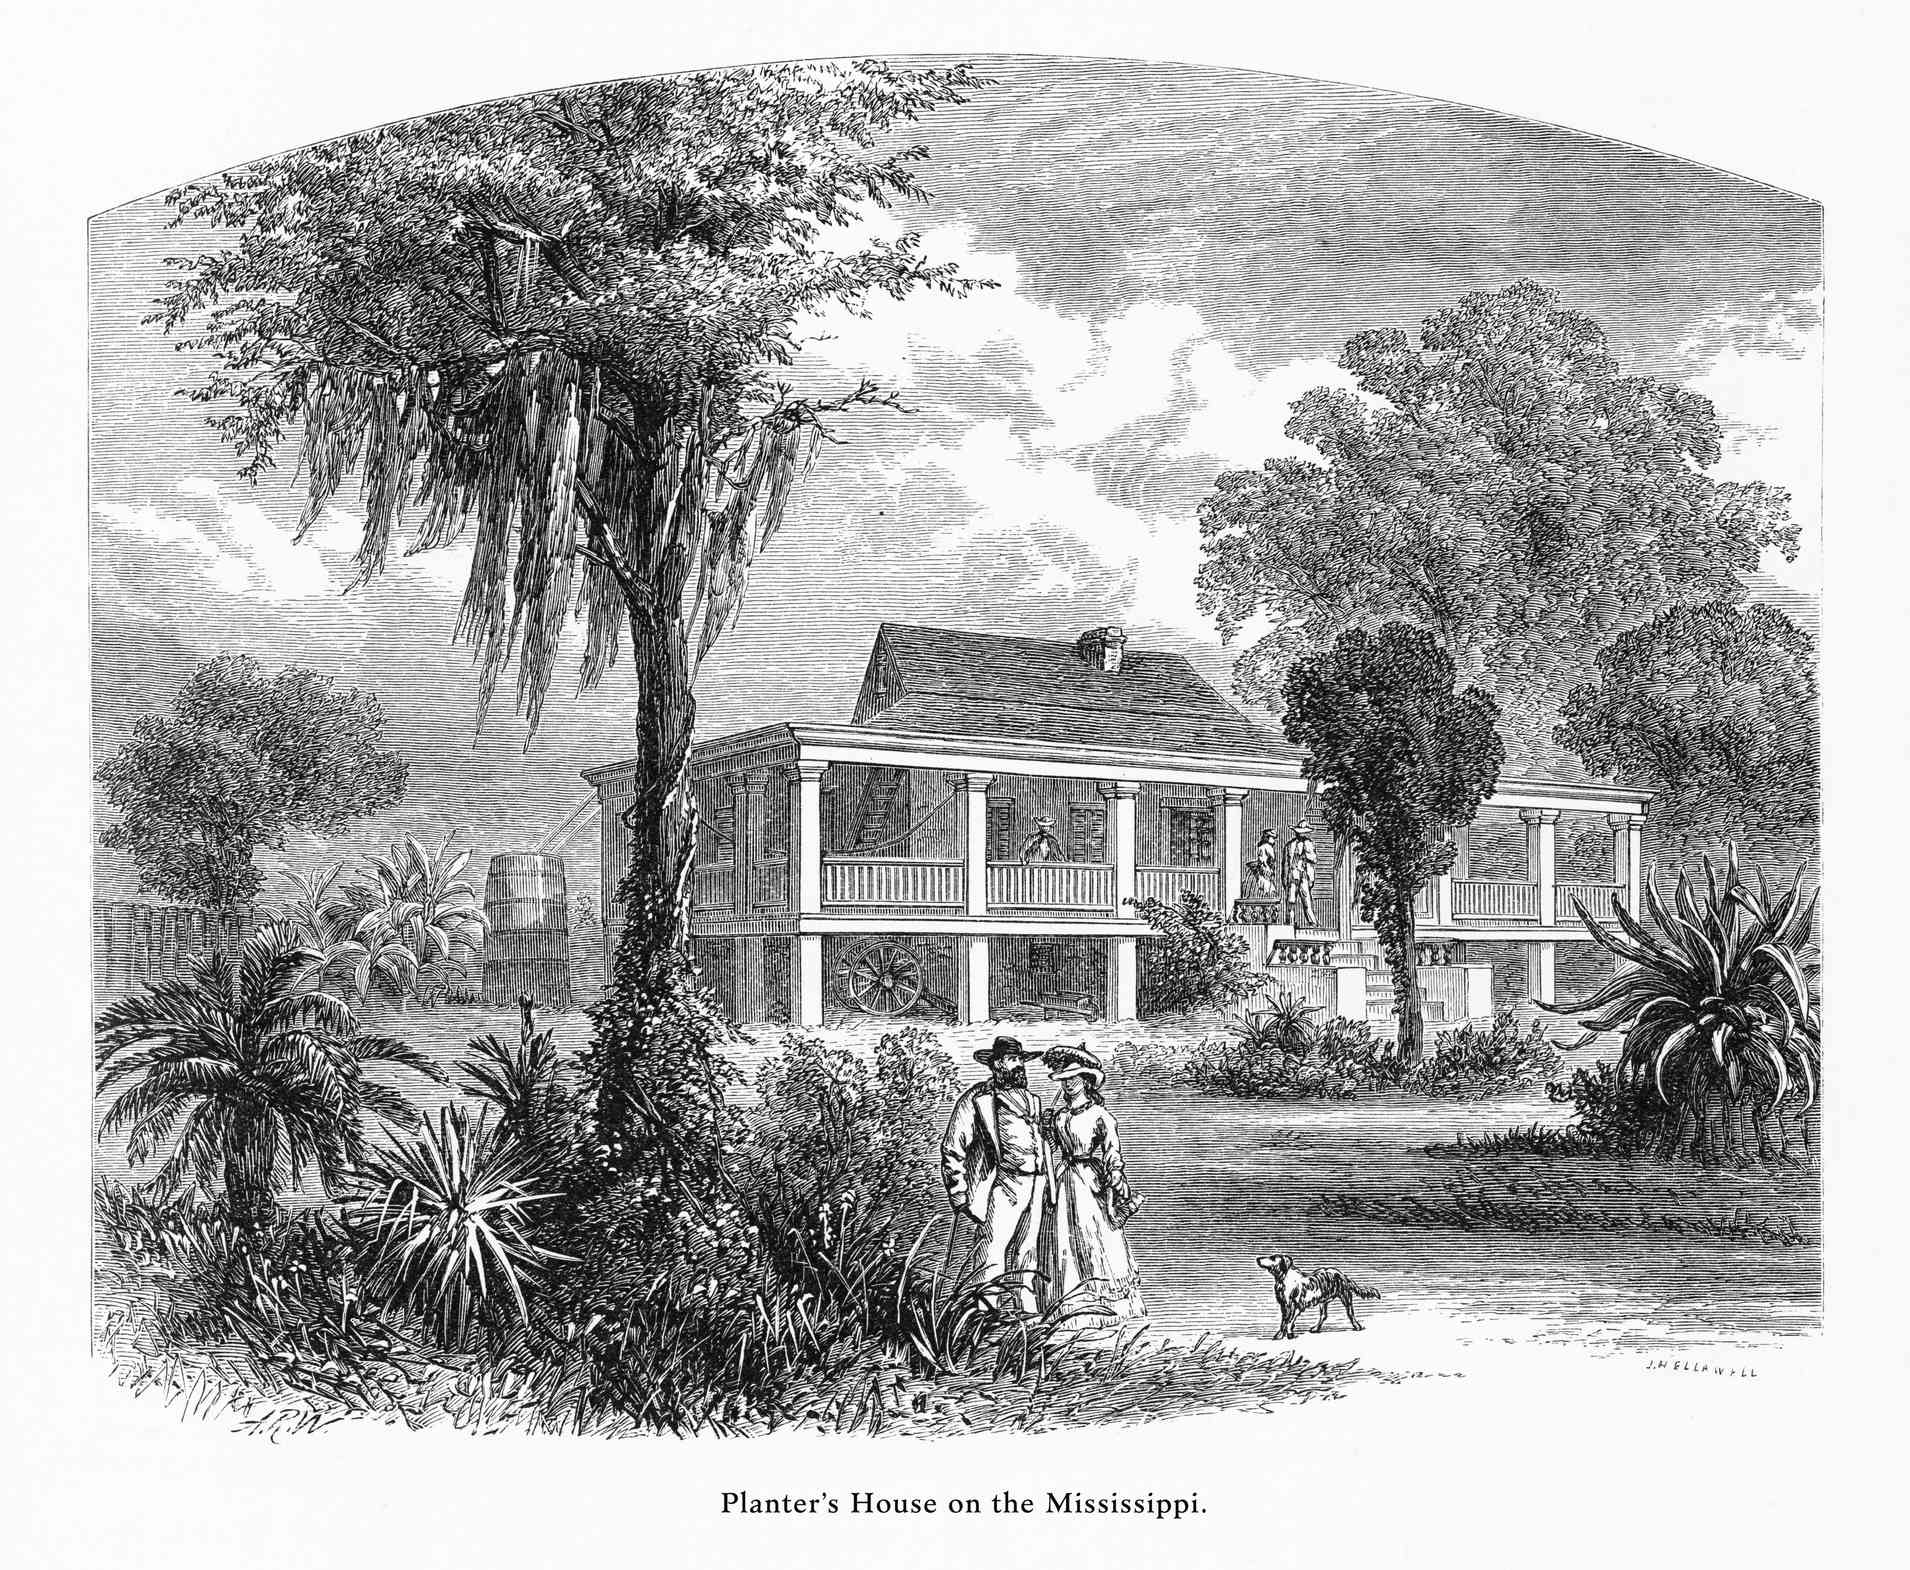 An image of a plantation home.